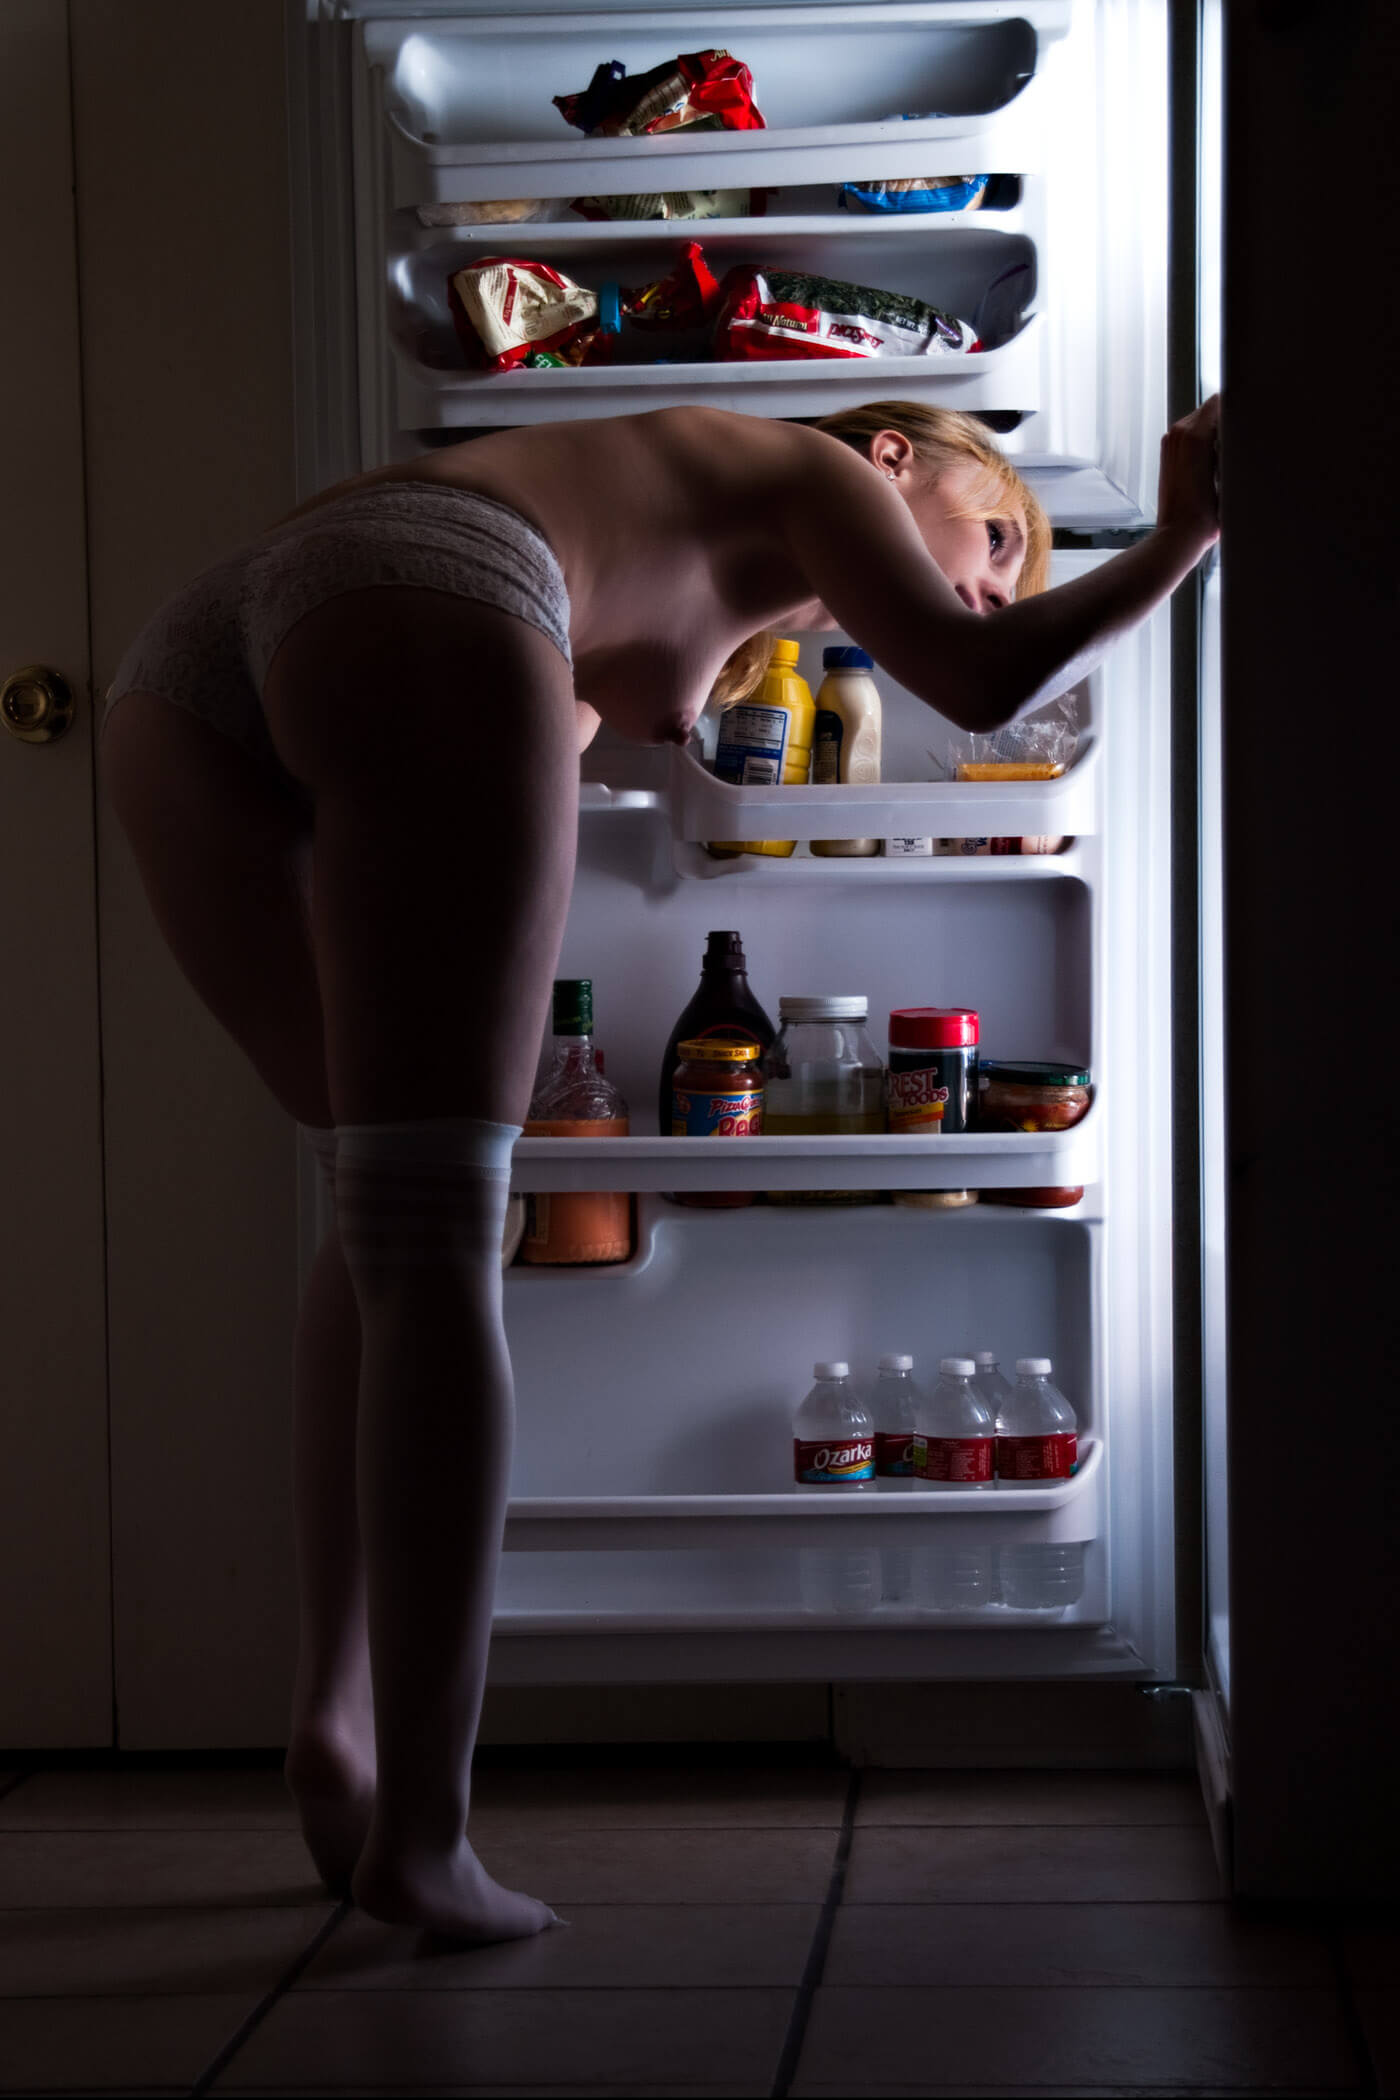 Kat standing topless near the fridge